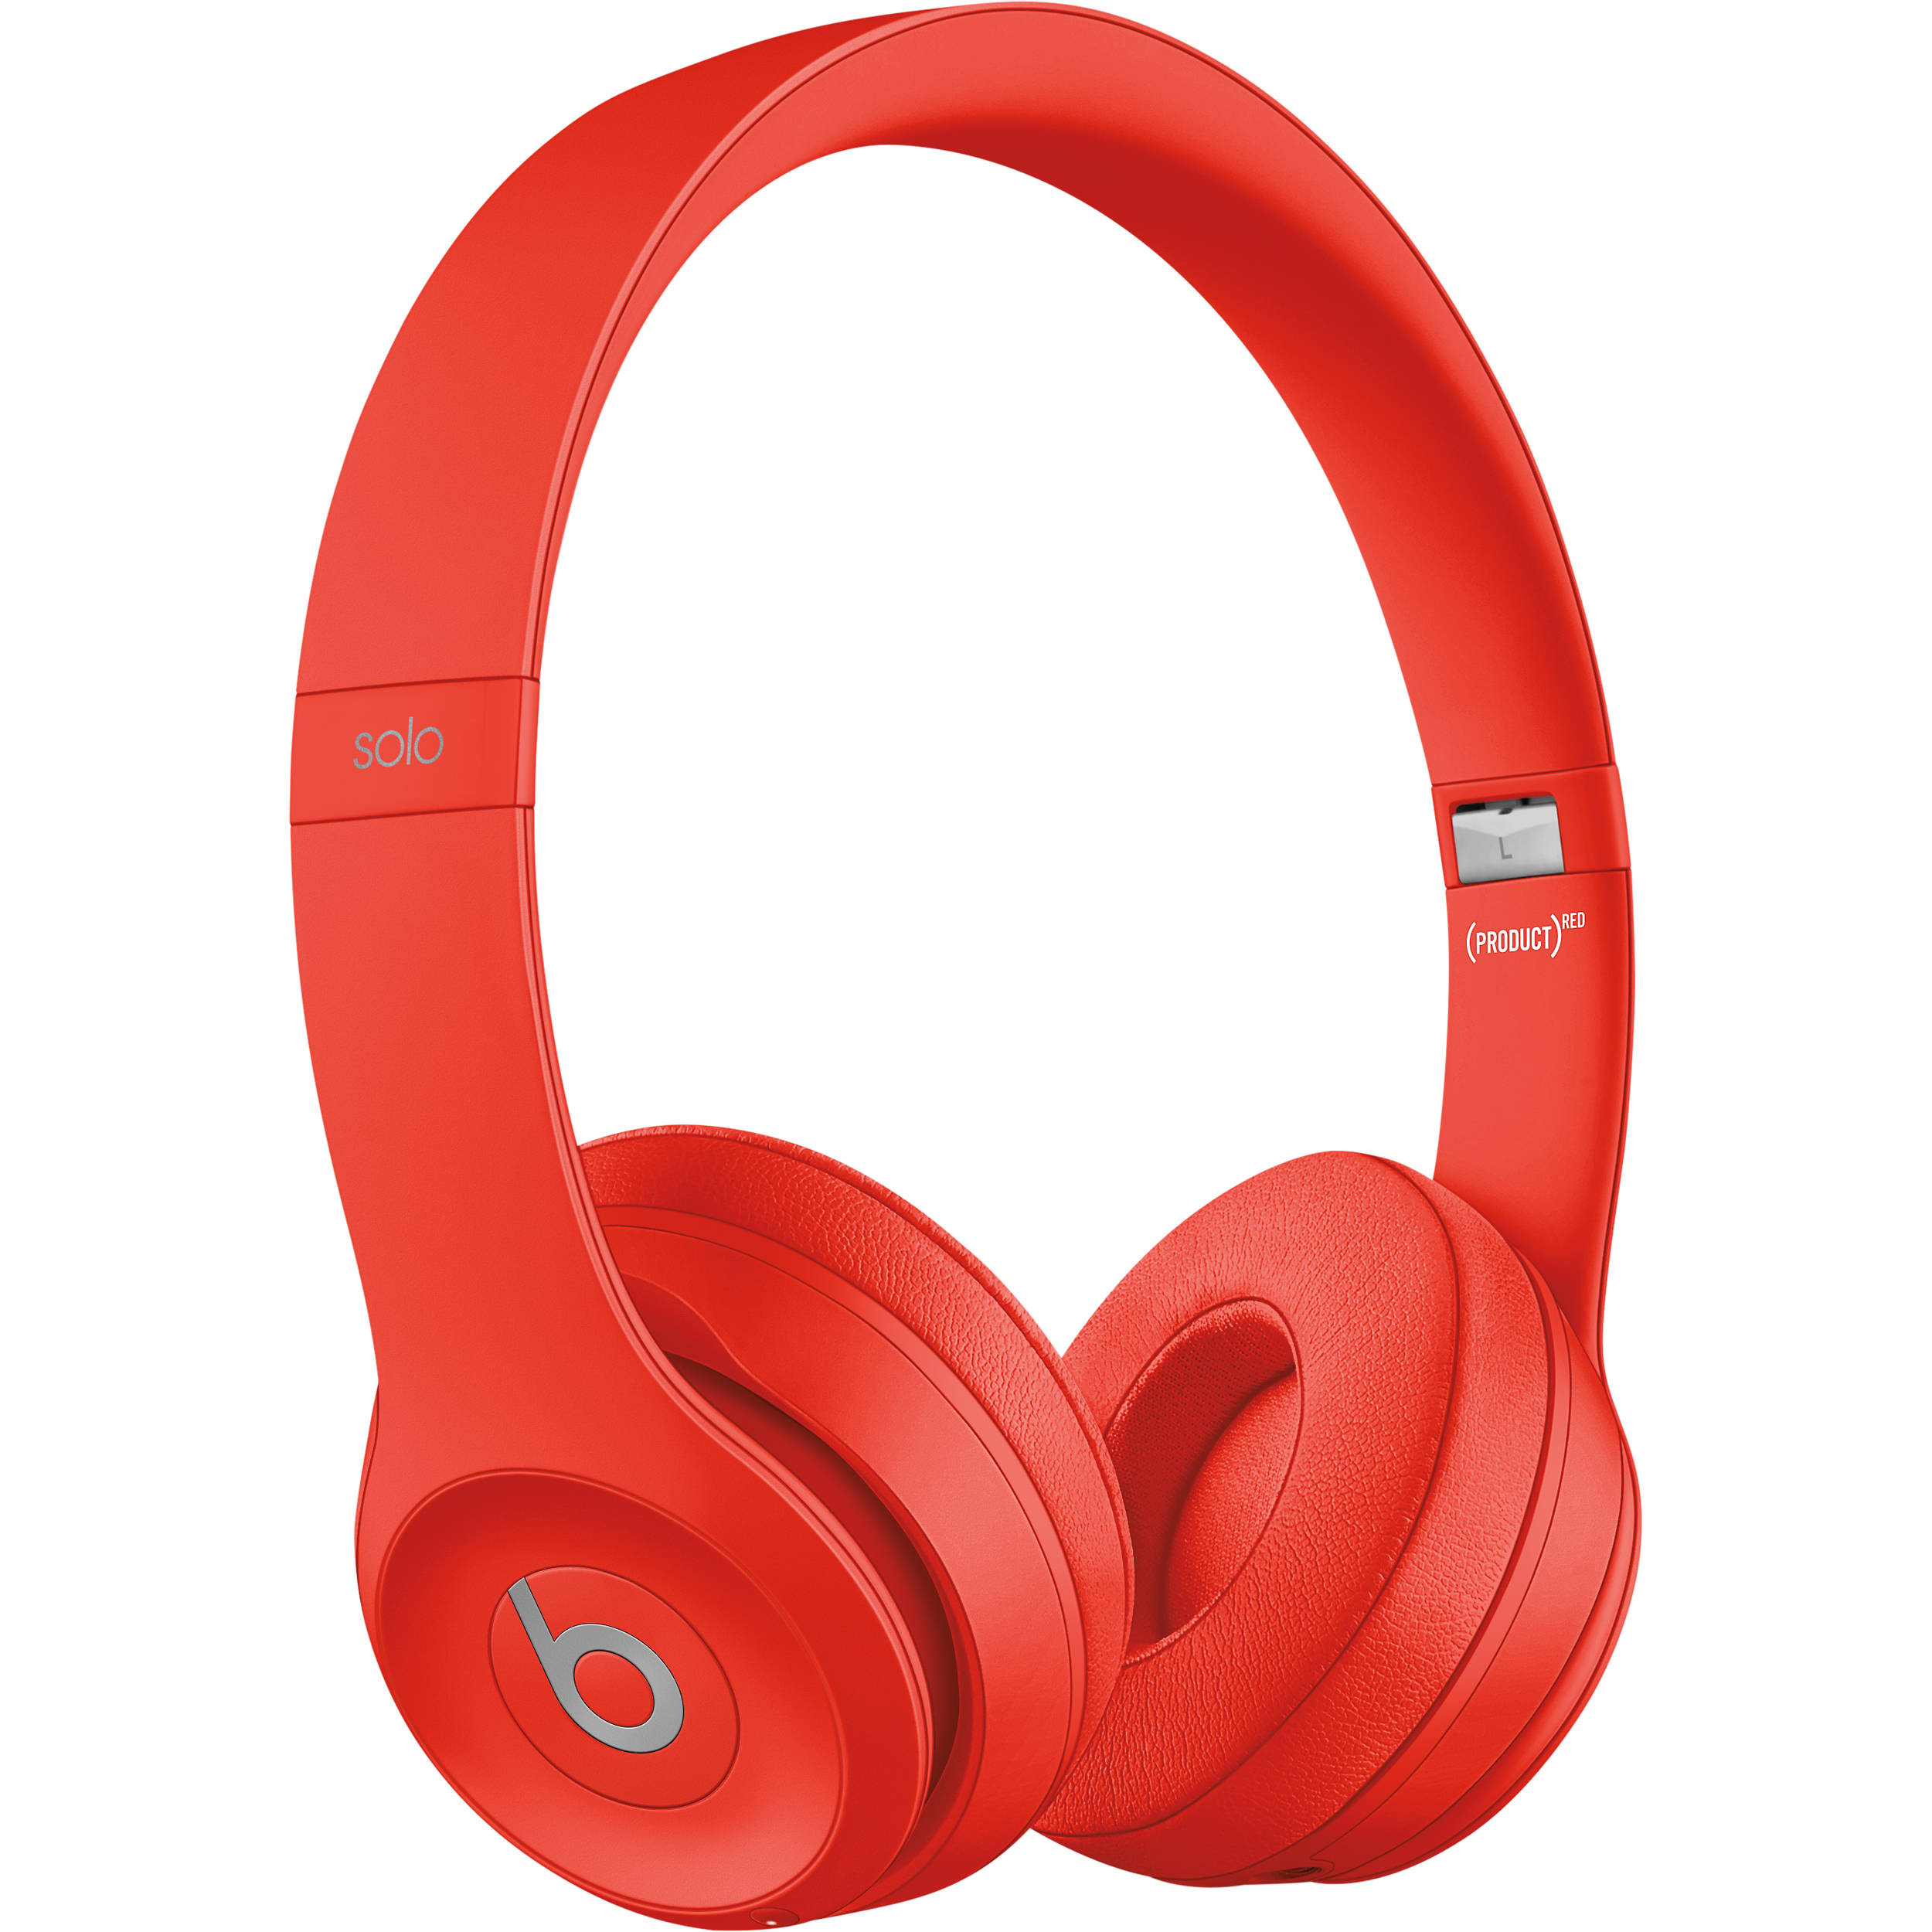 Beats by Dr. Dre Beats Solo3 Wireless On-Ear Headphones (Red / Core)